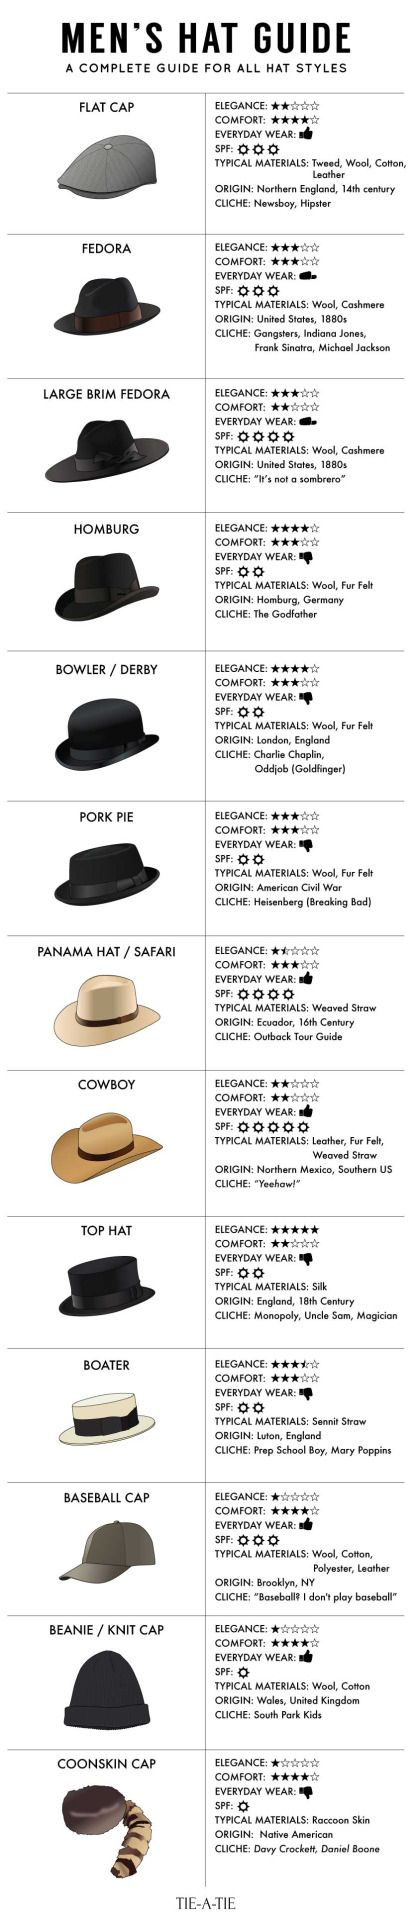 "bows-n-ties: "" THE ULTIMATE GUIDE TO MEN'S HATS "" 